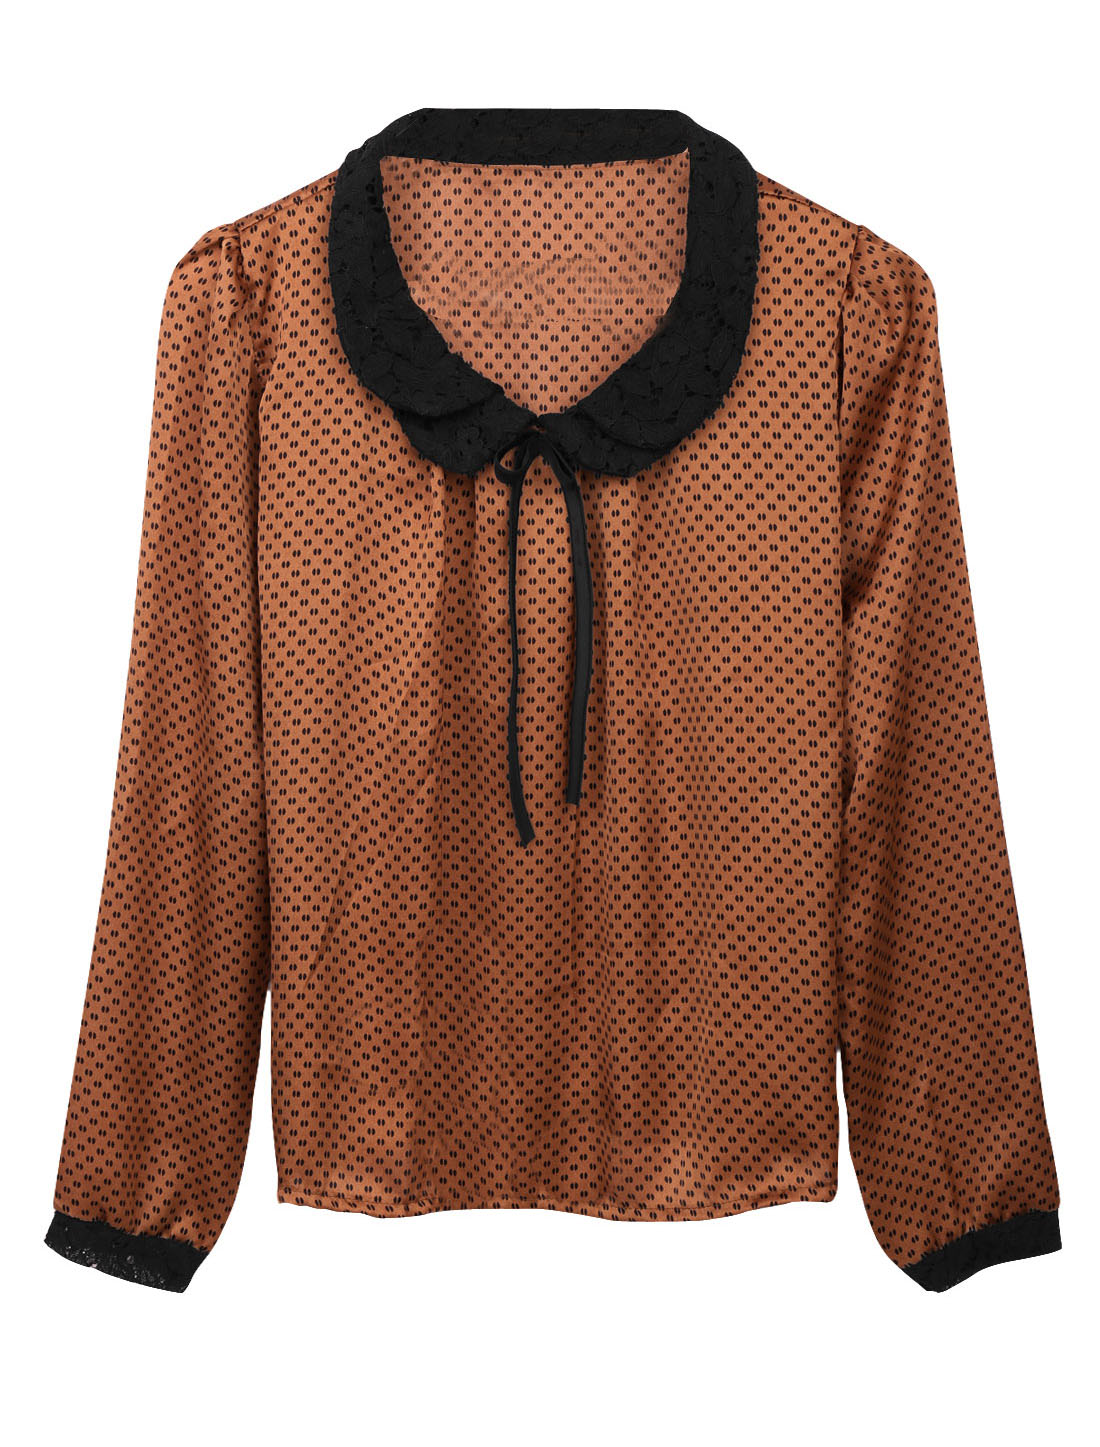 Women Peter Pan Collar Long Sleeves Dots Top Brown XS